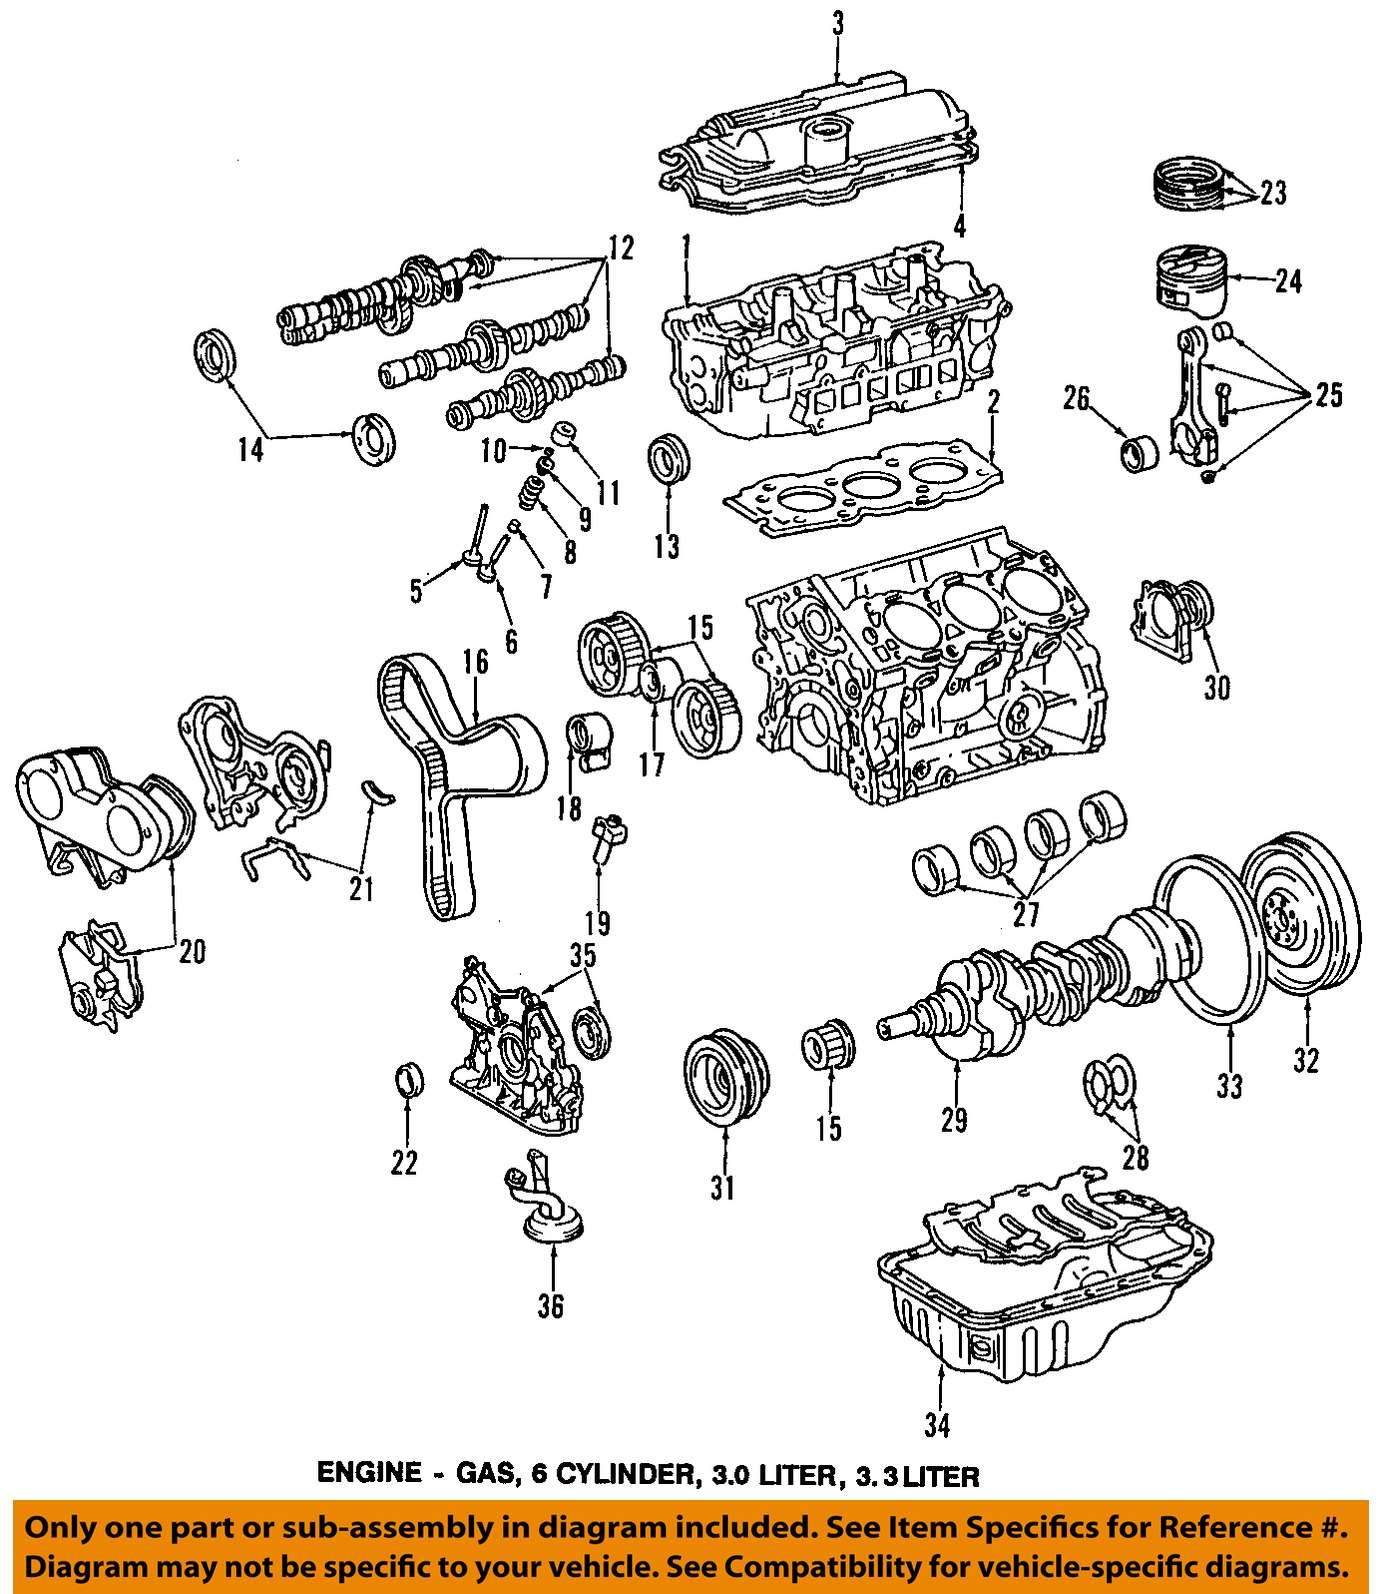 1993 toyota camry v6 engine parts diagram wiring diagram for toyota oem engine crankshaft crank seal 90311 40022 factory various rh com 1994 toyota camry v6 engine 1994 toyota camry v6 engine